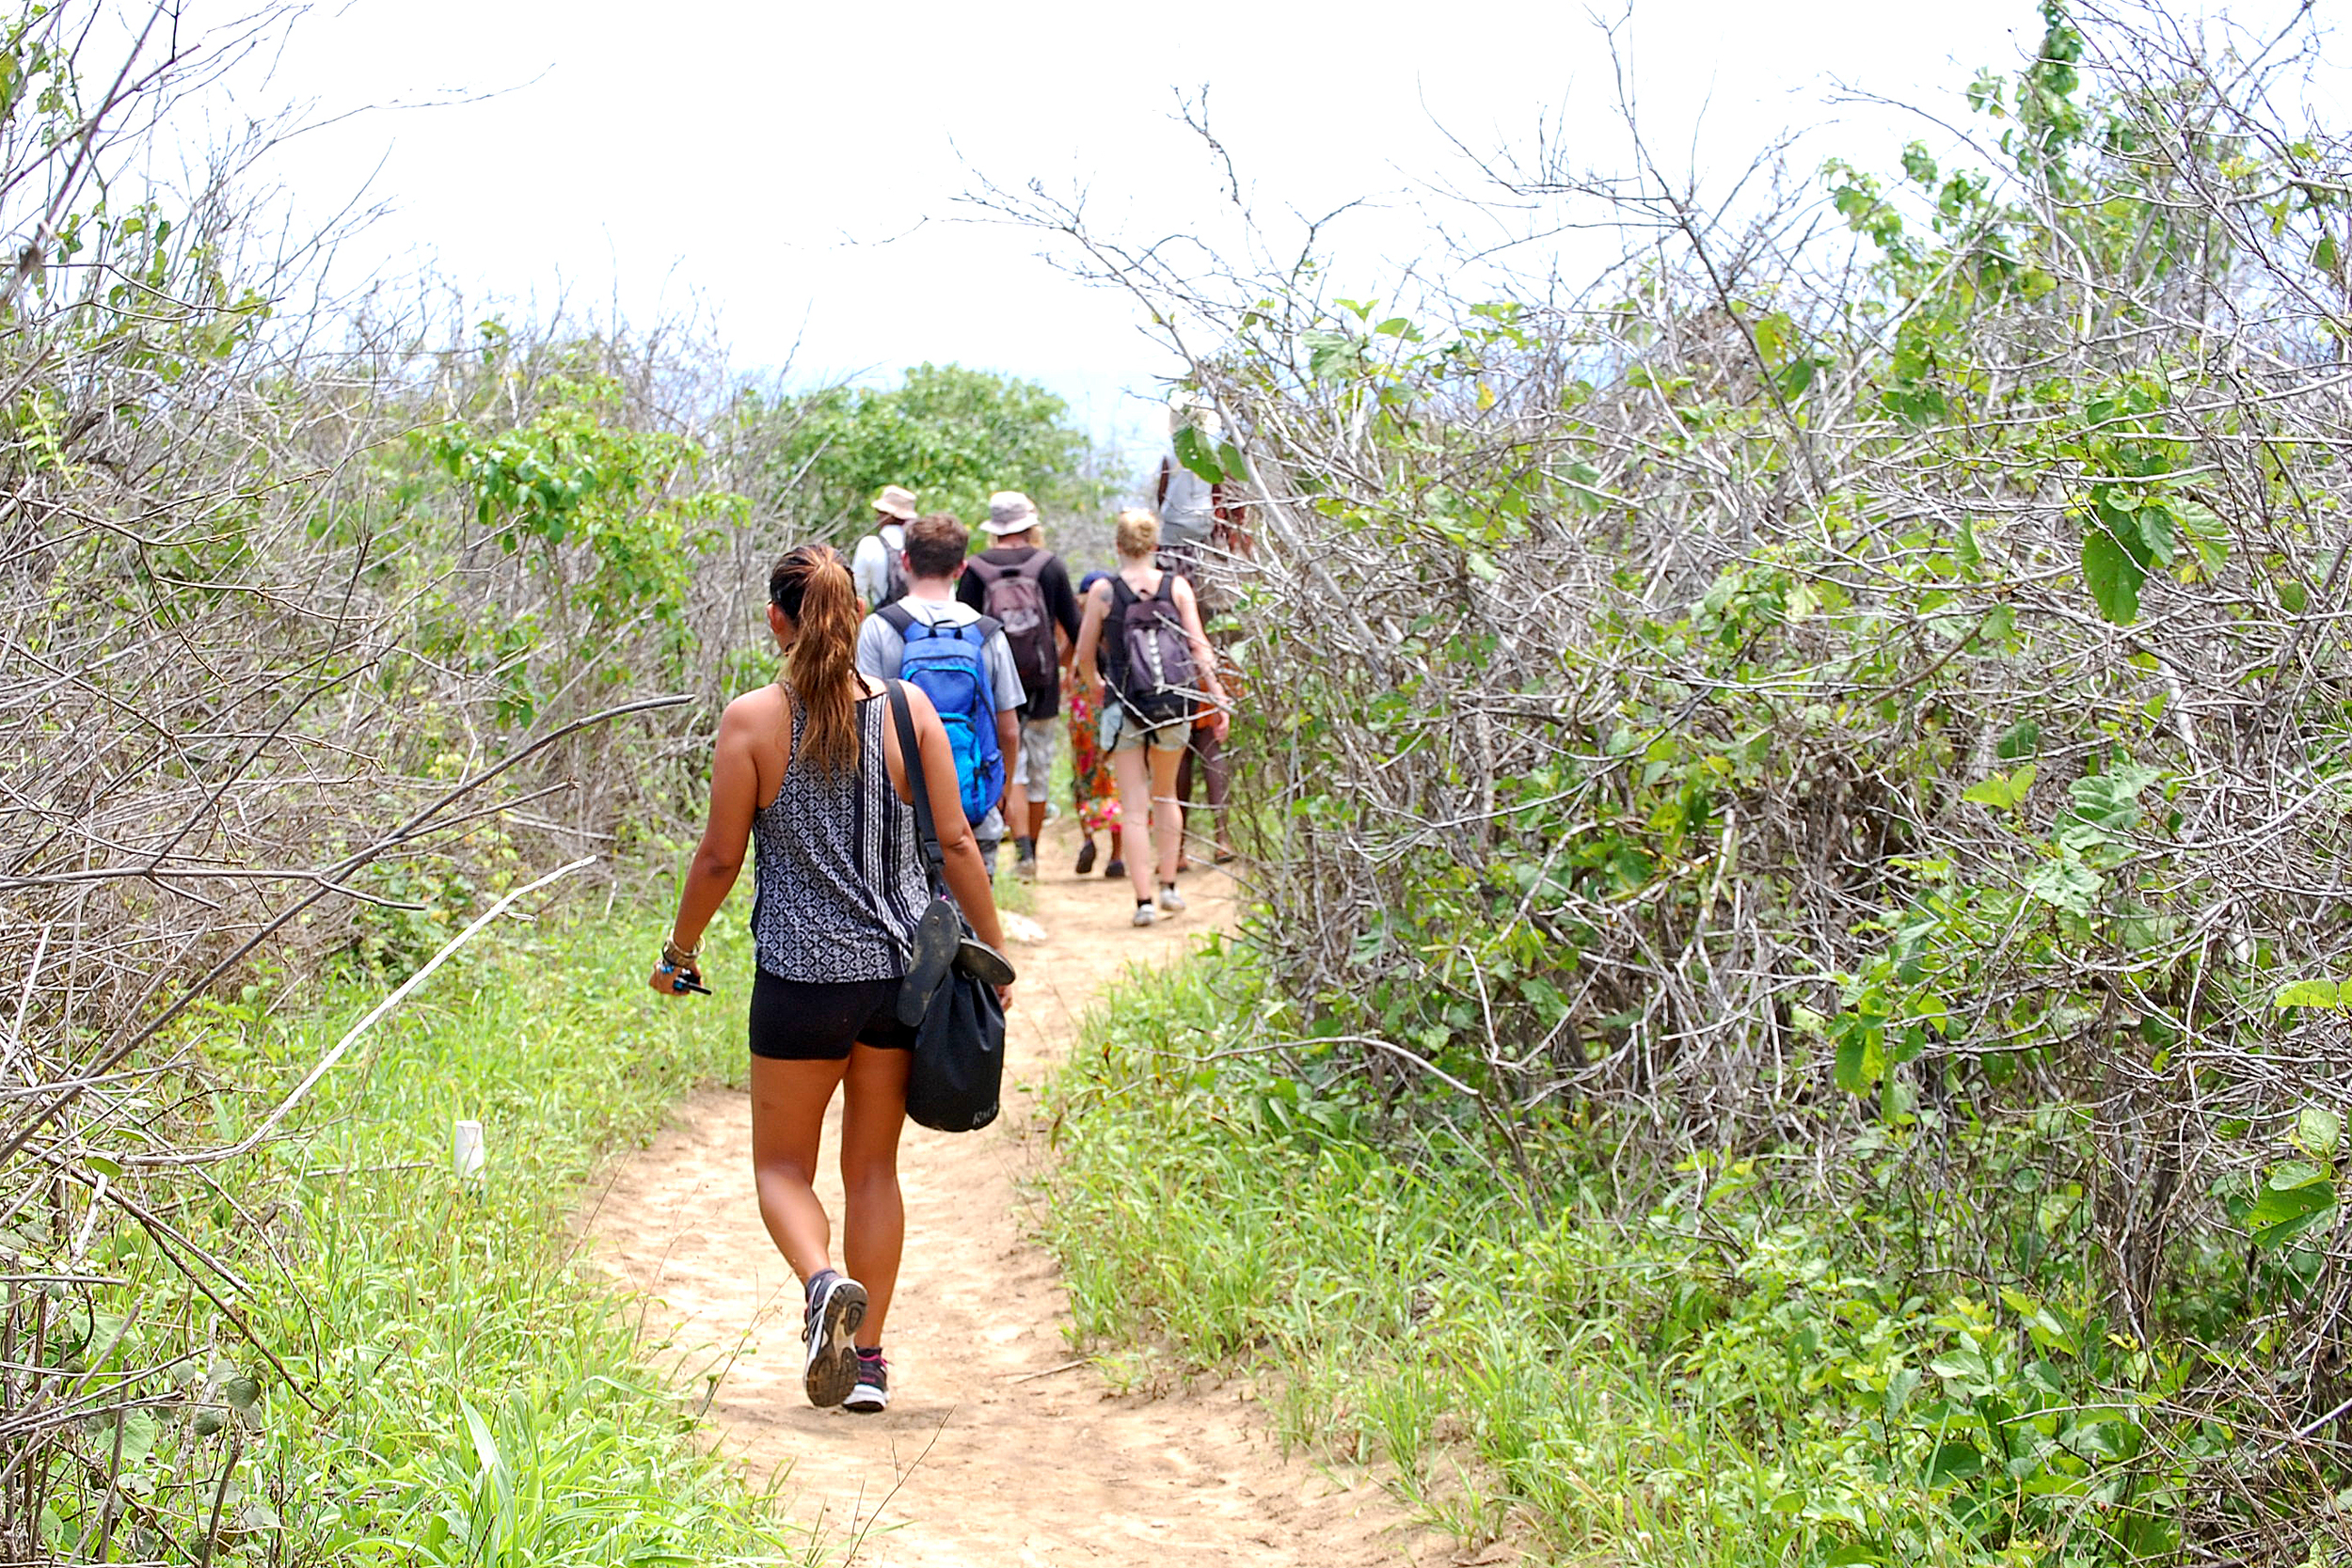 A group walking on a rugged outdoor path